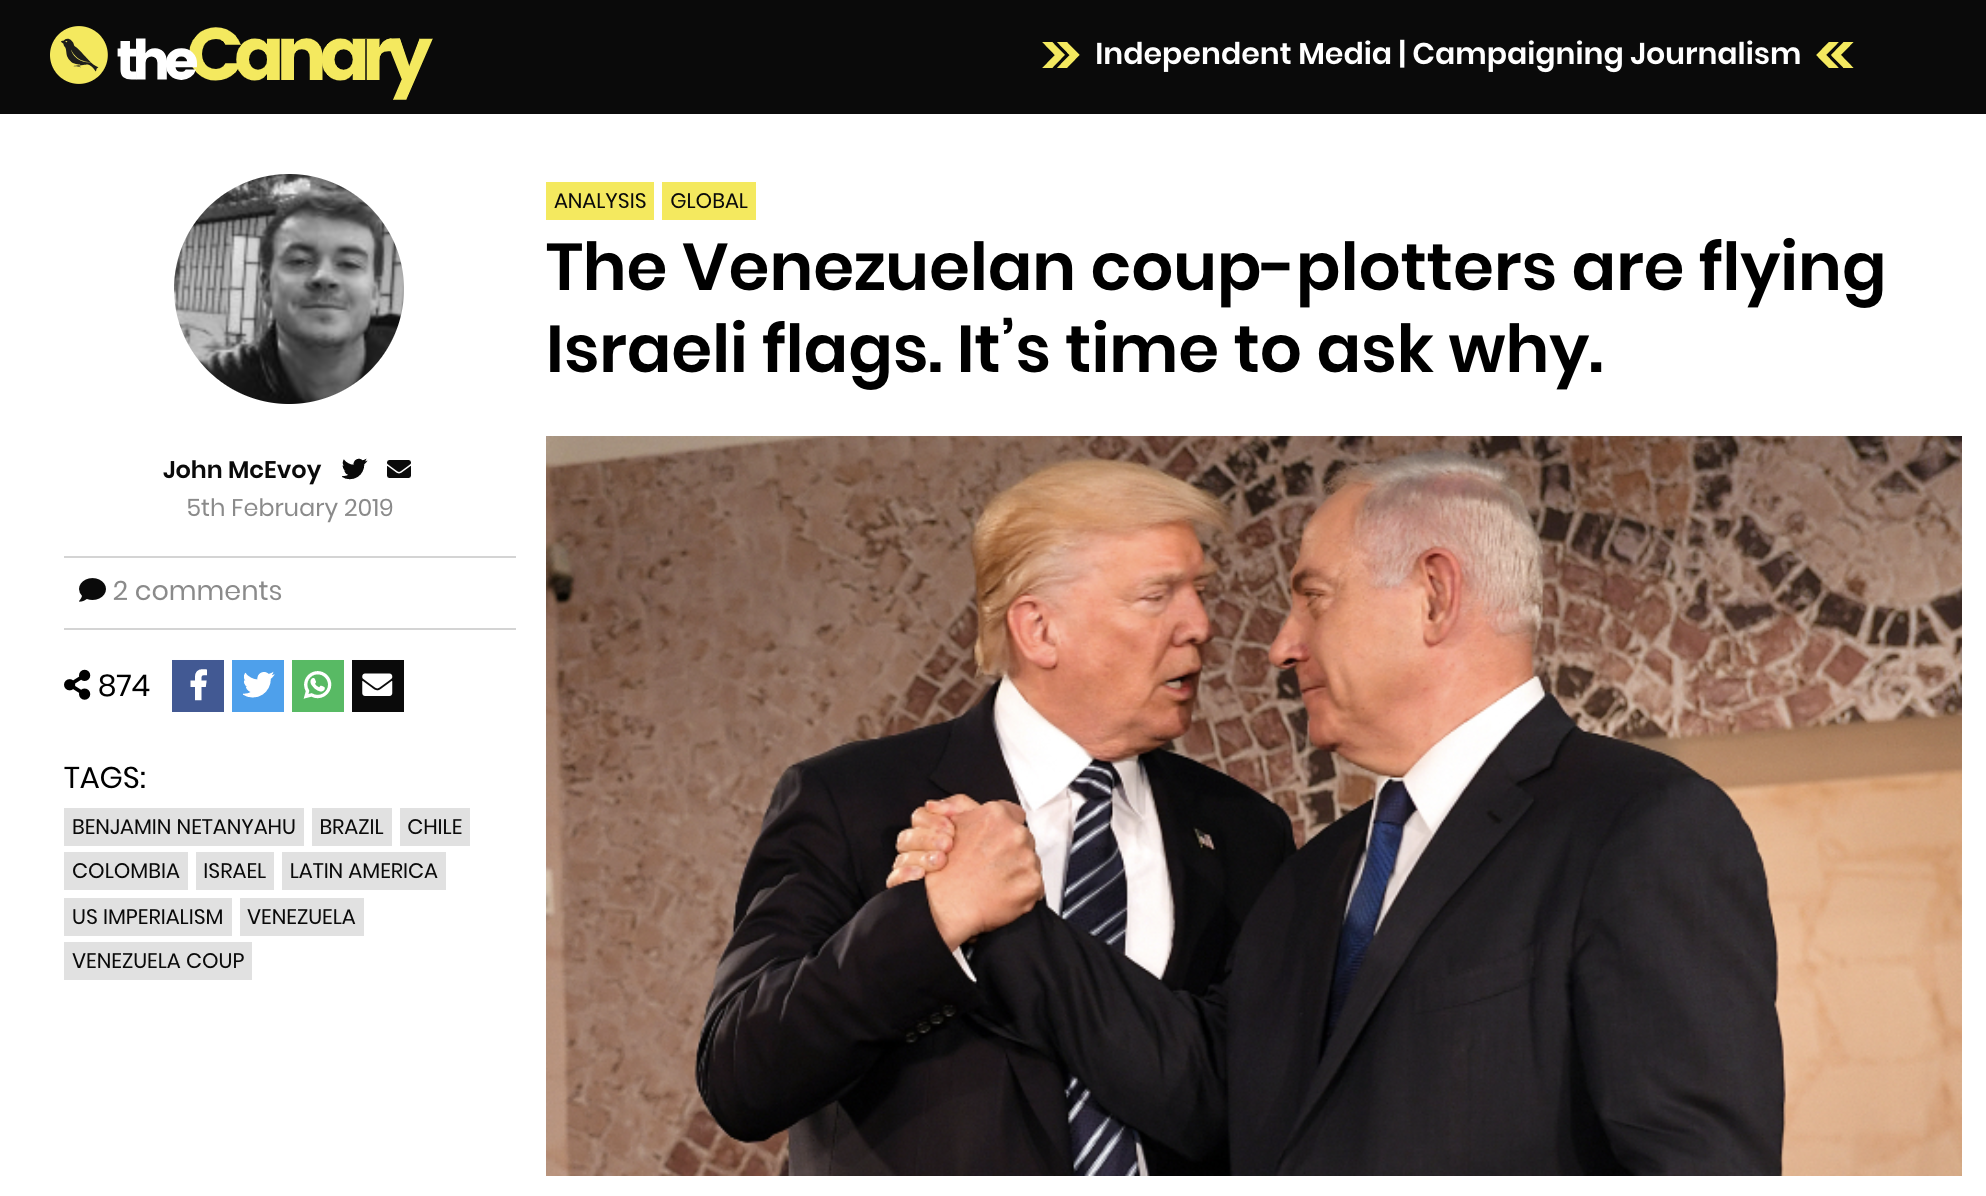 Venezuela: The Left manages to blame the Jews Screen-Shot-2019-02-07-at-15.40.15